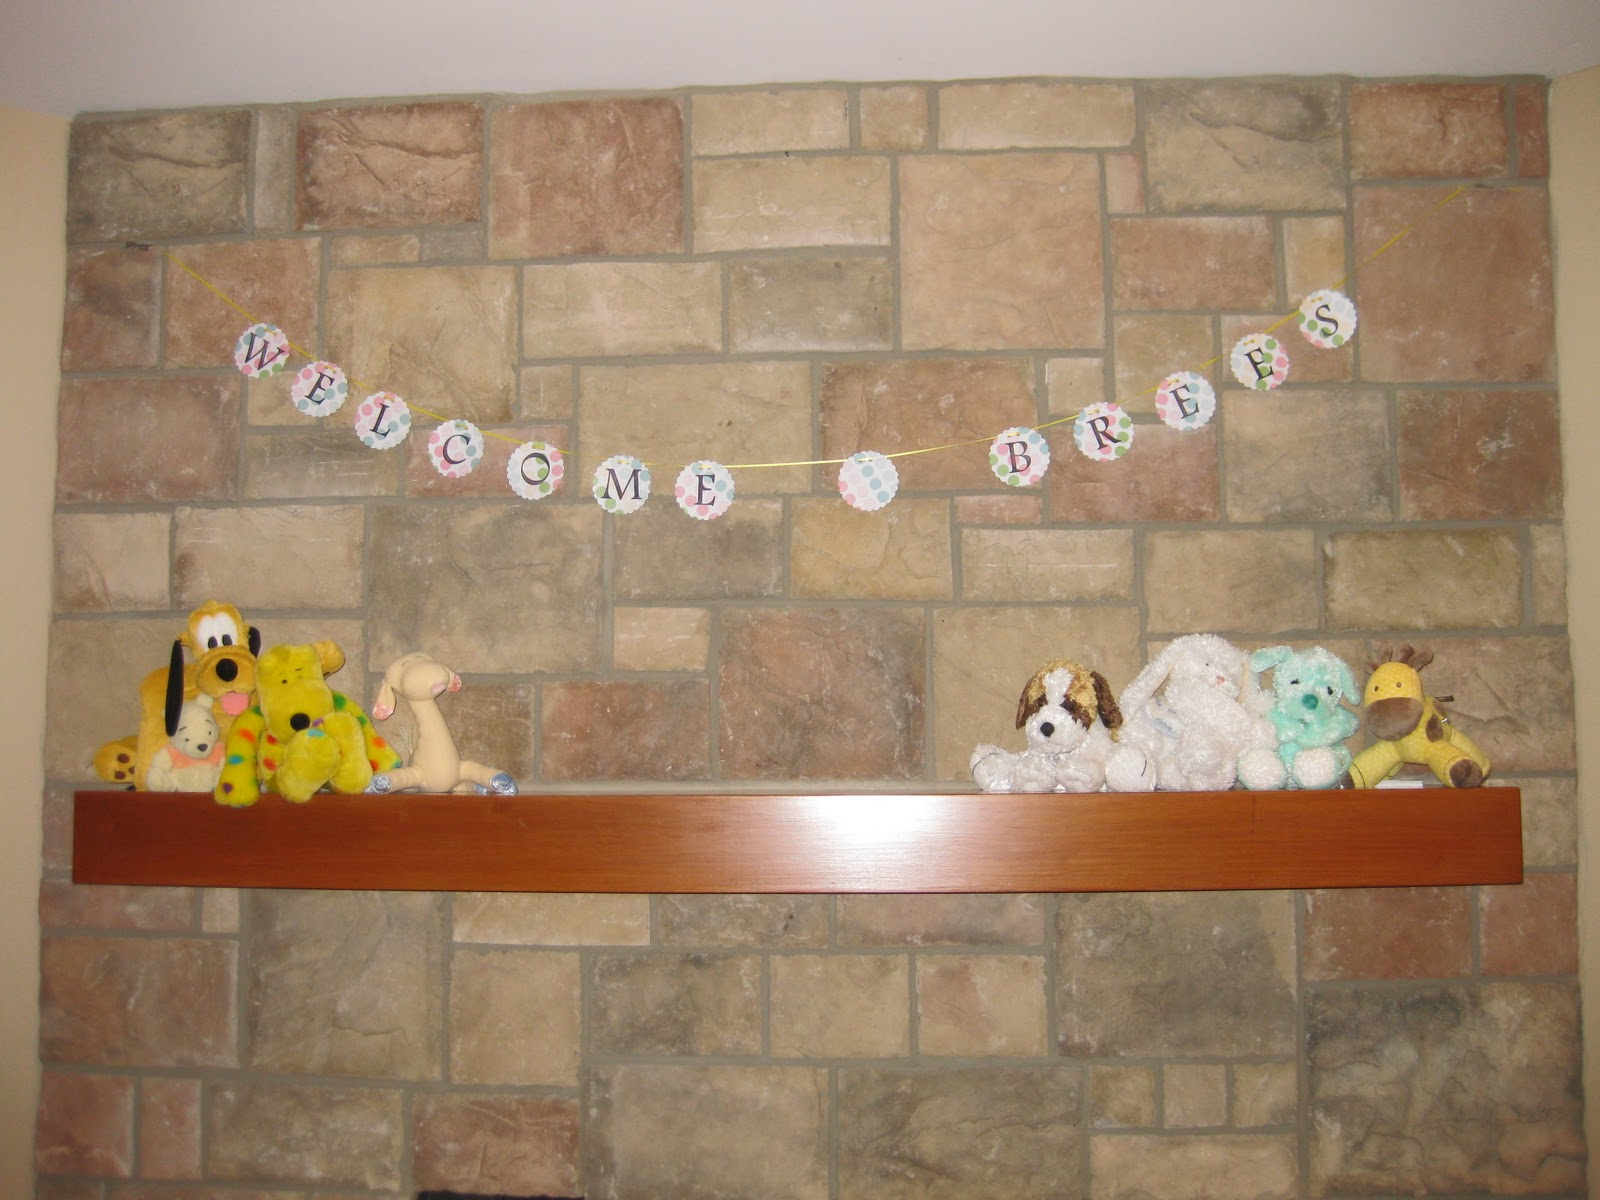 the shower was held at beth and marty 39 s house tom 39 s sister and